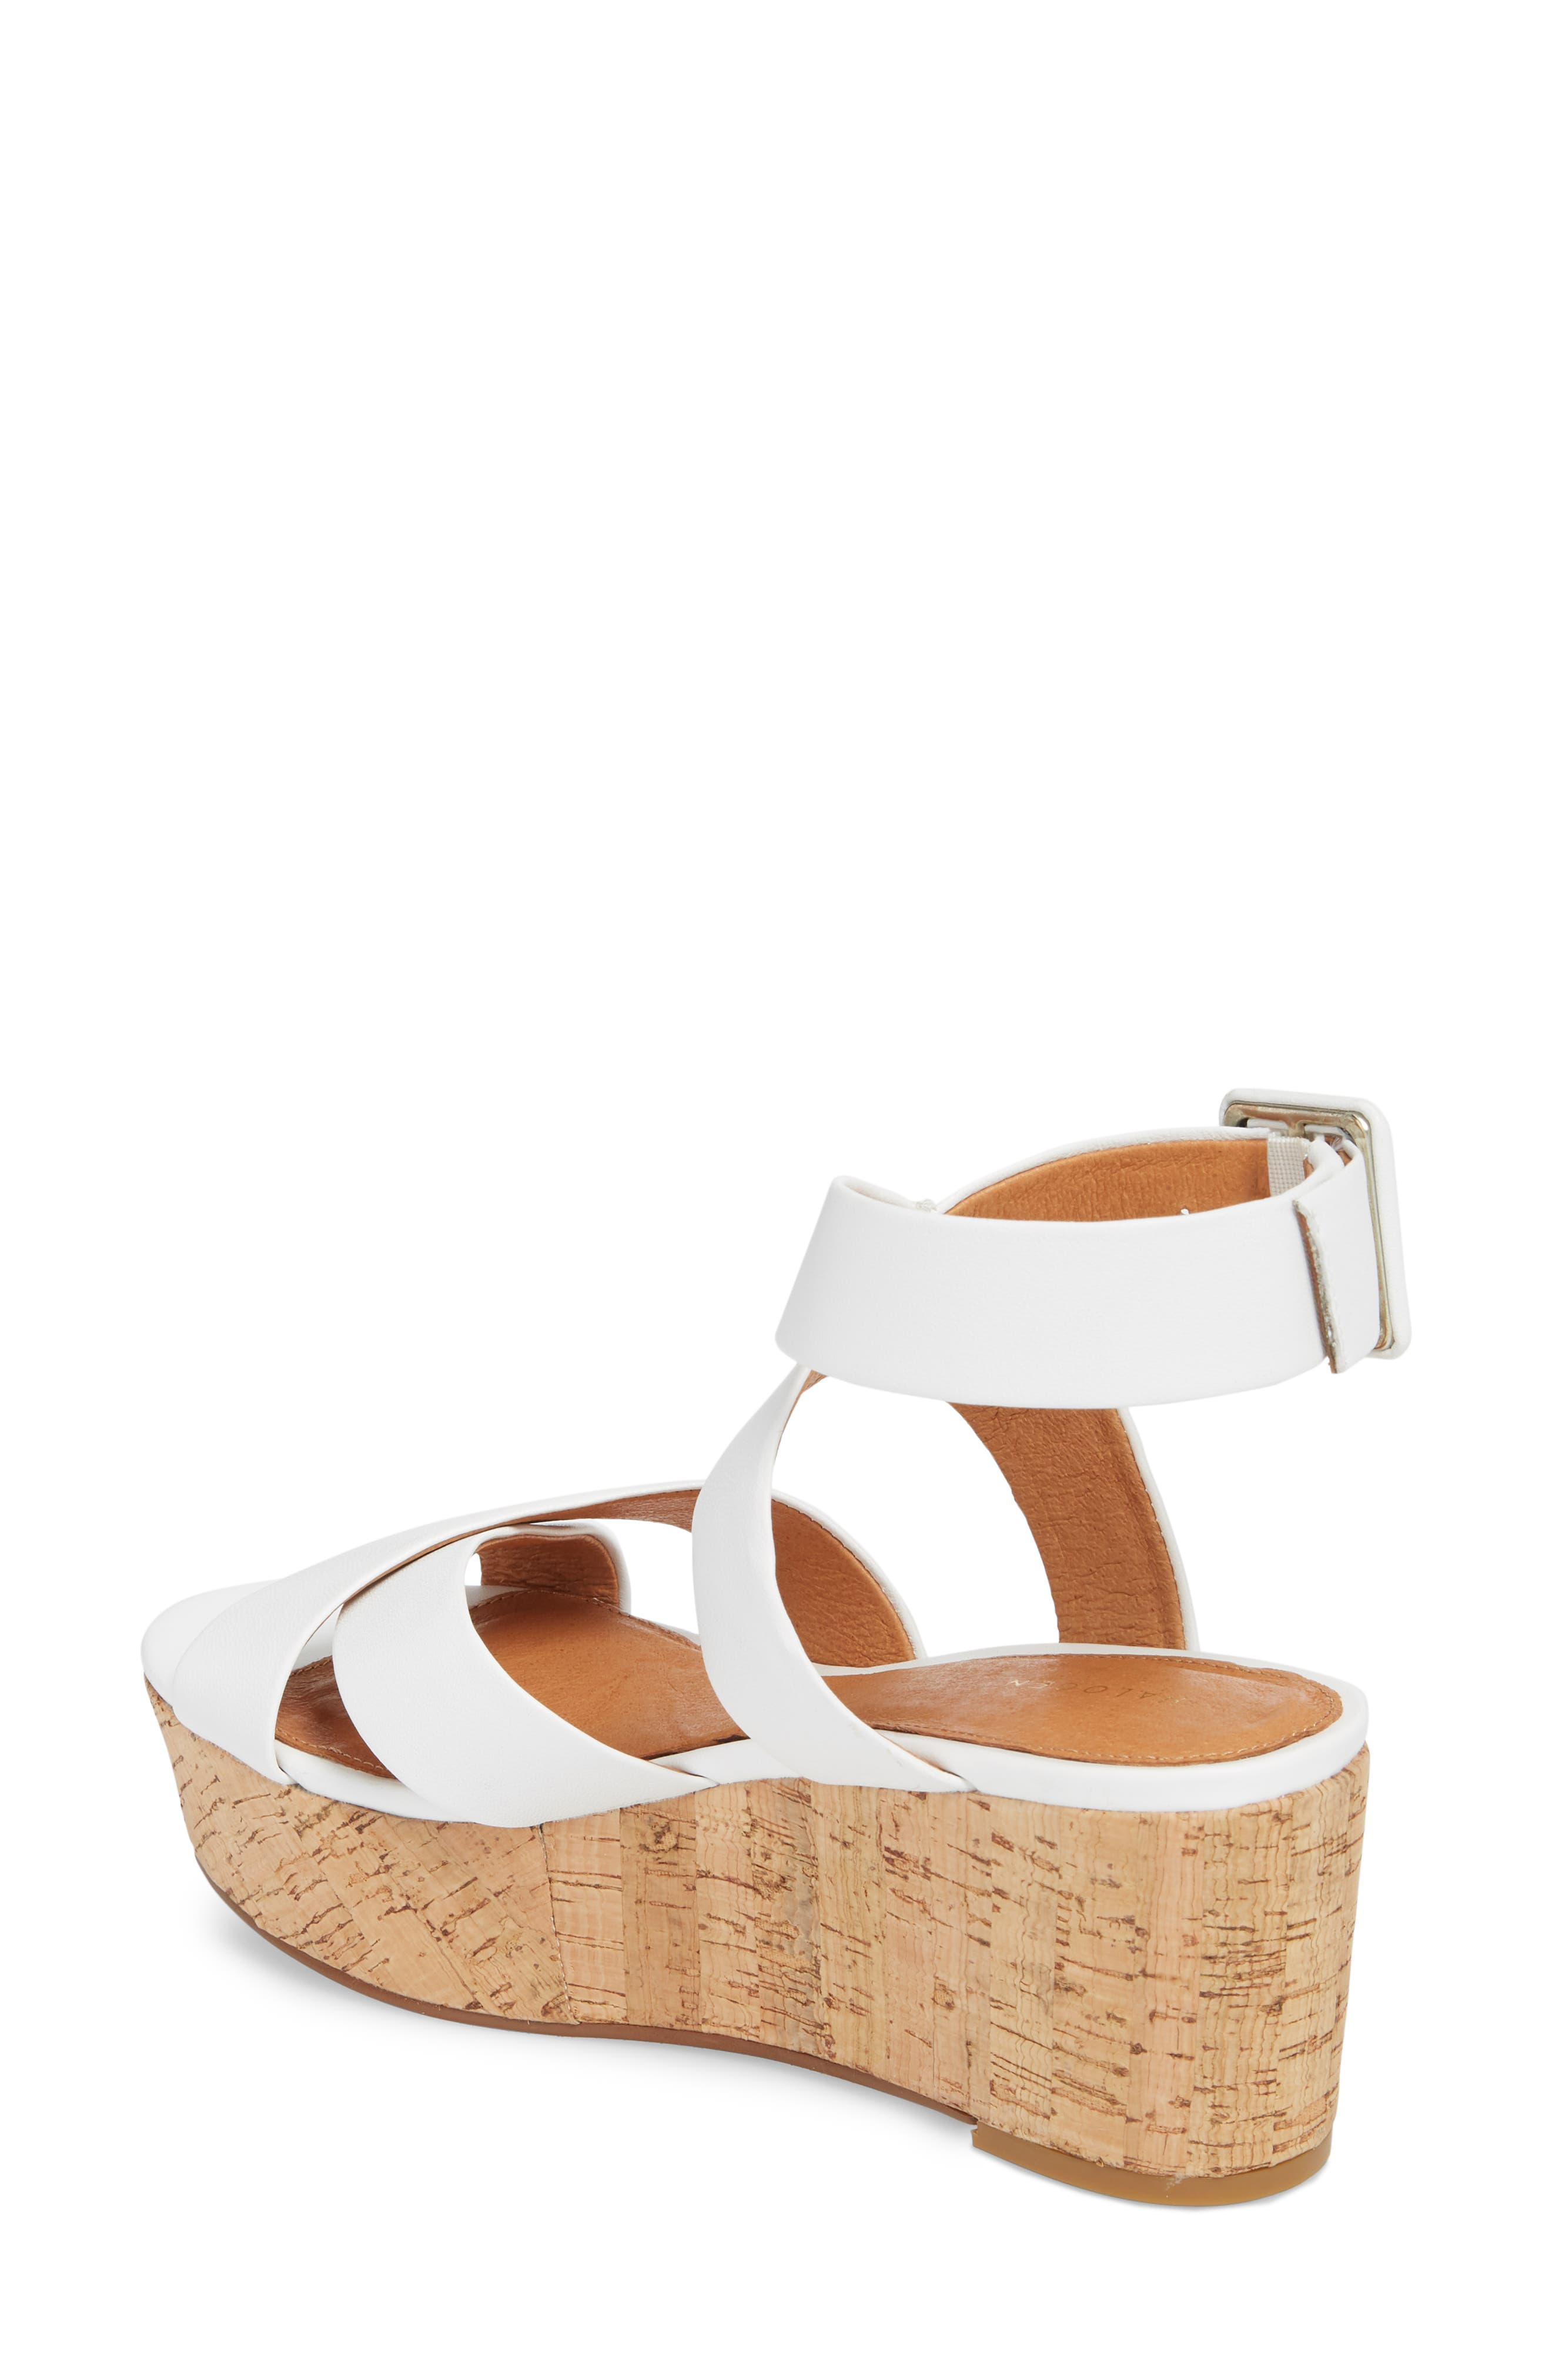 Evie Platform Wedge Sandal,                             Alternate thumbnail 2, color,                             White Leather